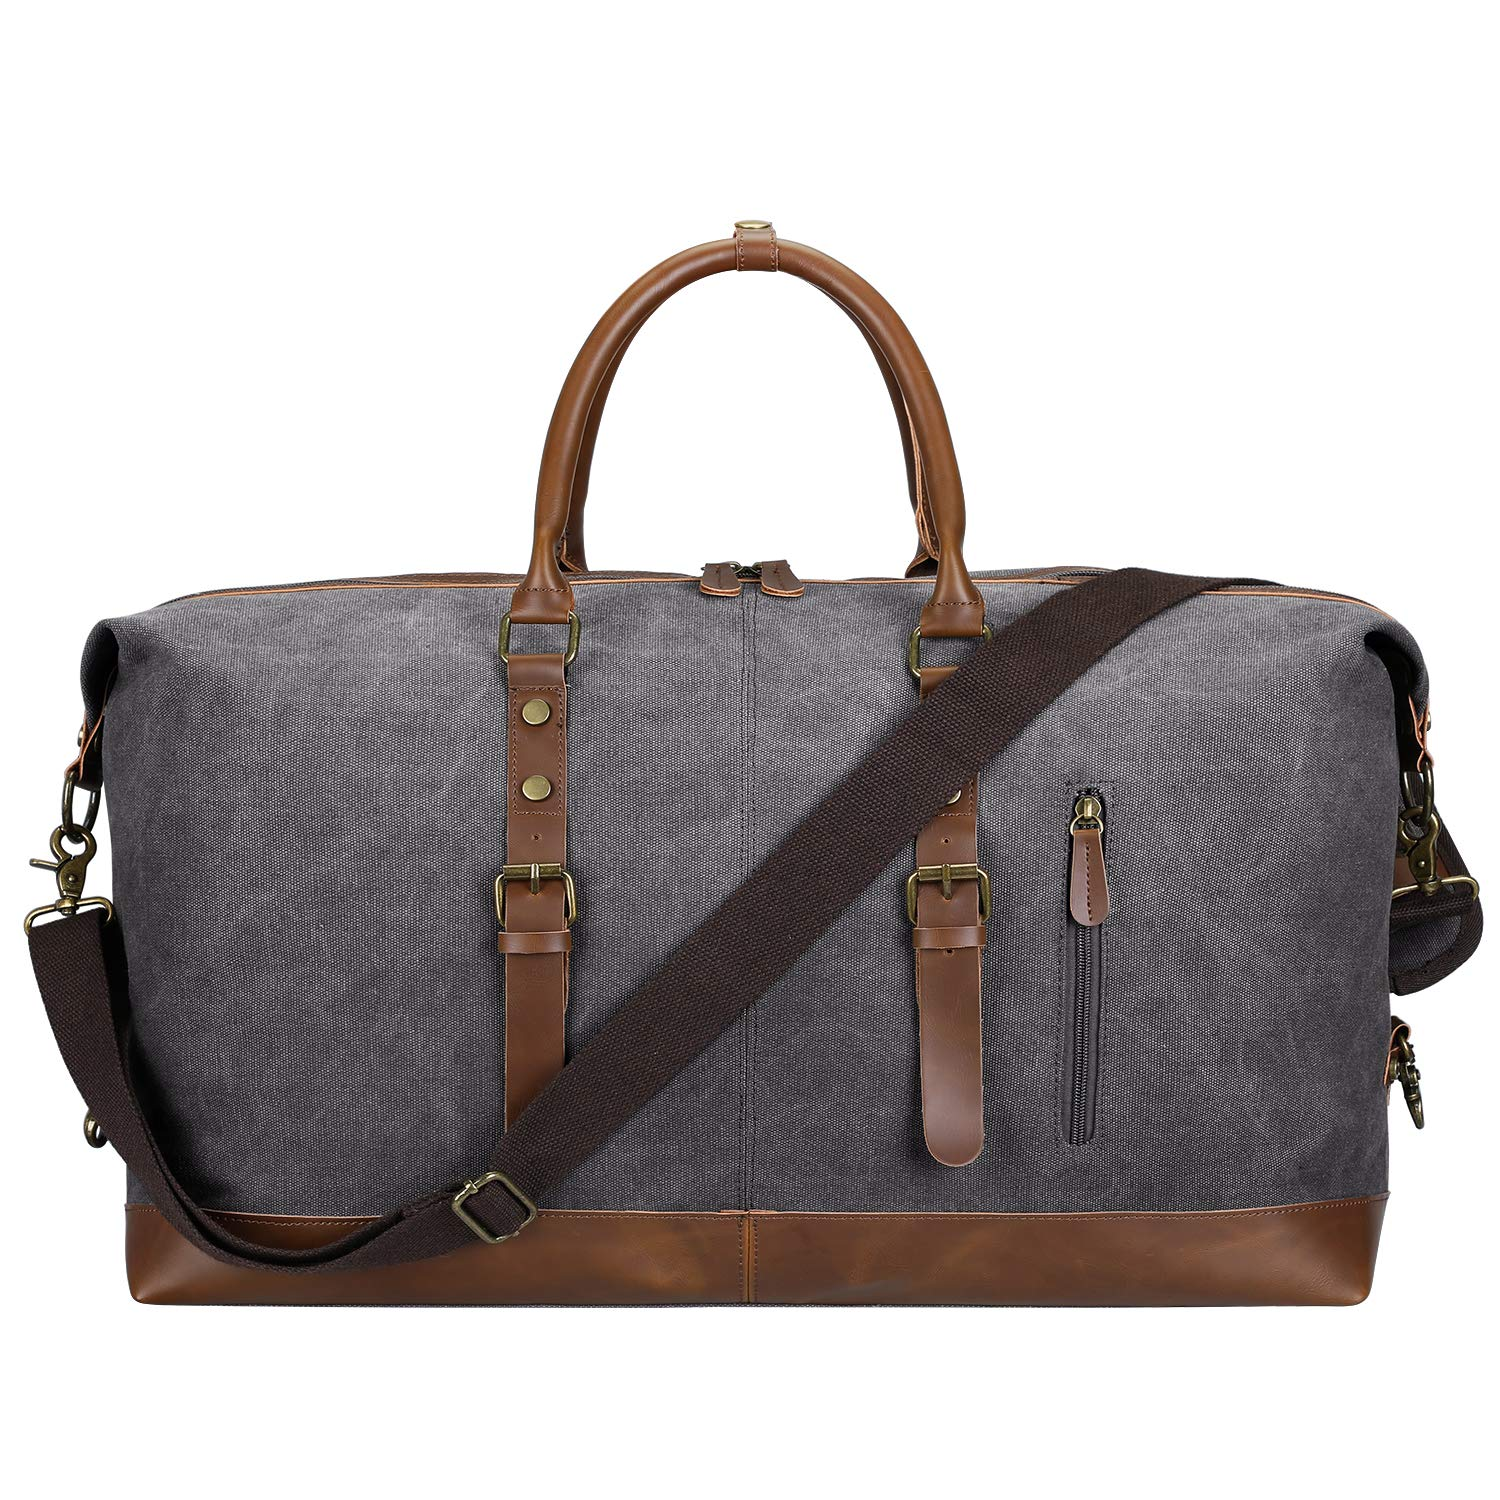 SAMSHOWS Canvas PU Leather Travel Tote Luggage Bag Oversized Weekender Duffel Bag with Removable Shoulder Strap Unisex